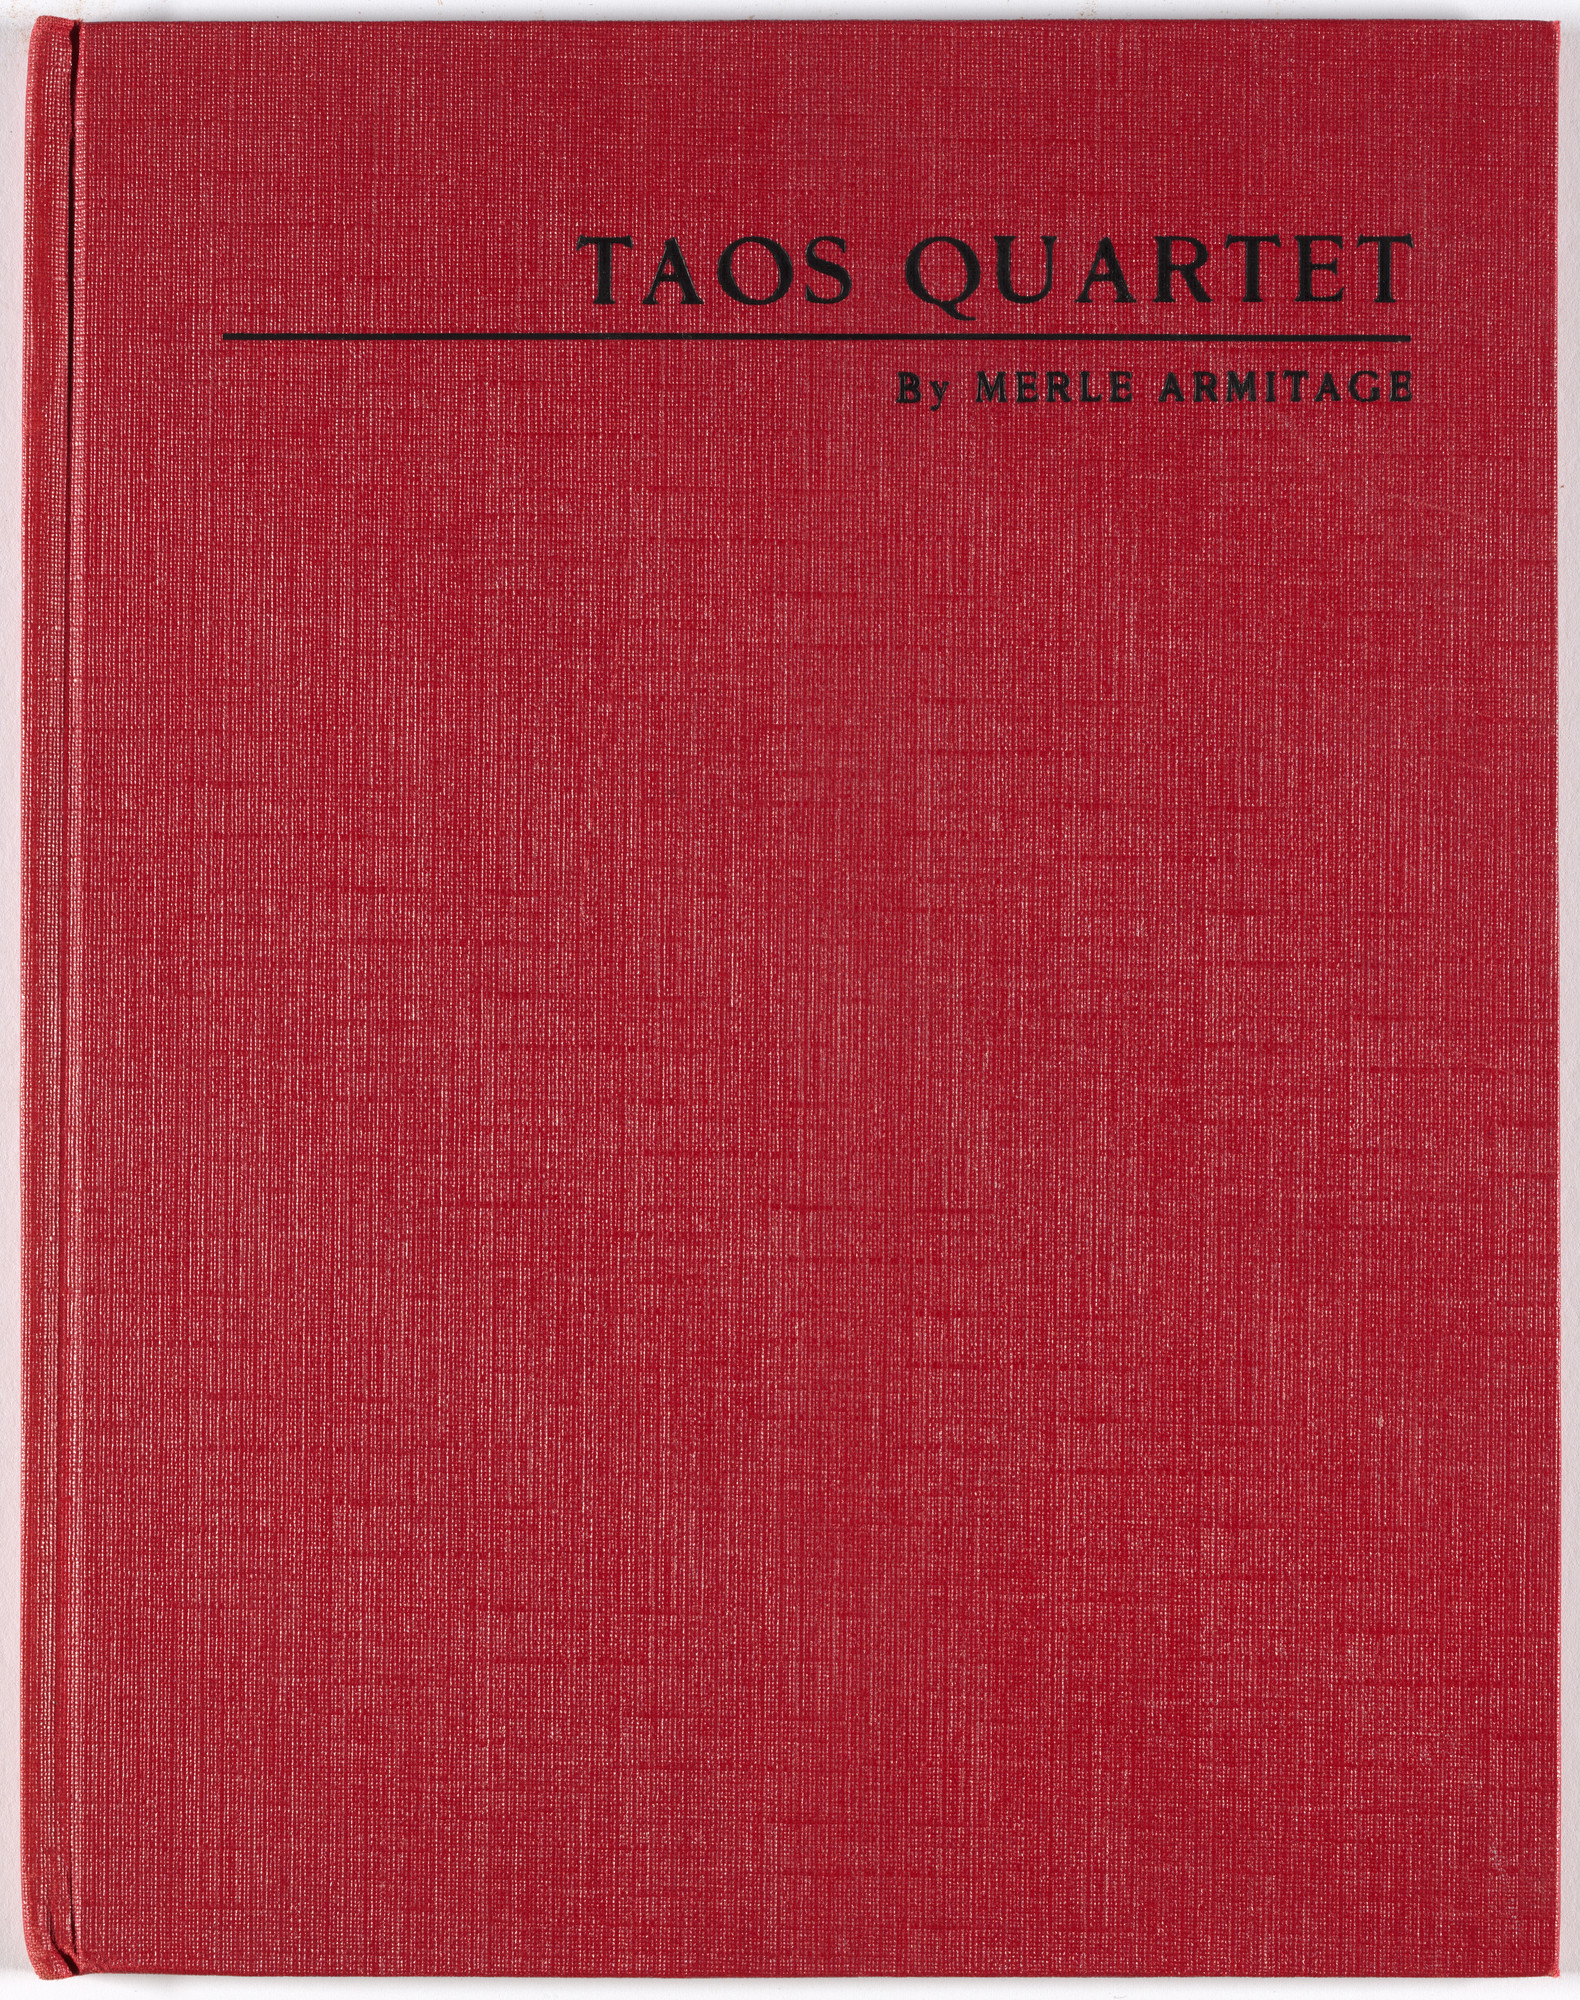 Richard Pousette-Dart, Merle Armitage. Taos Quartet in Three Movements by Merle Armitage. 1950